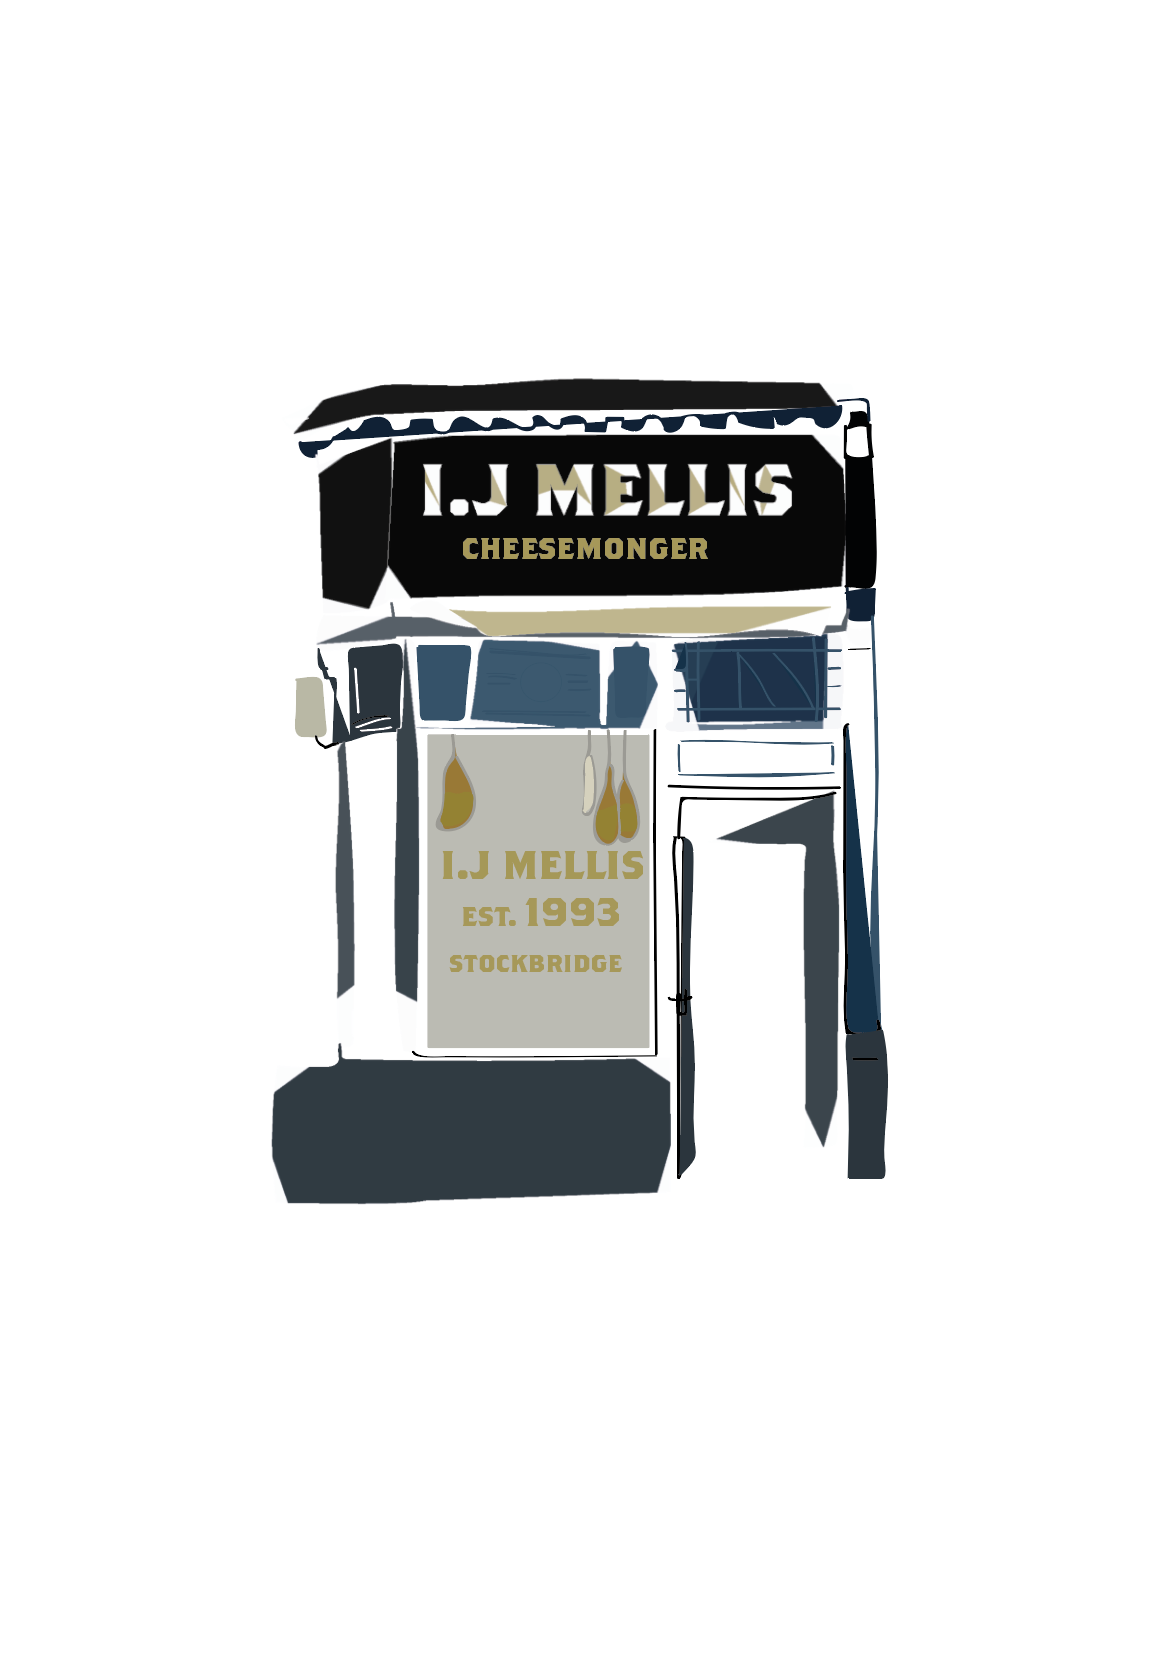 Mellis Cheese Shop